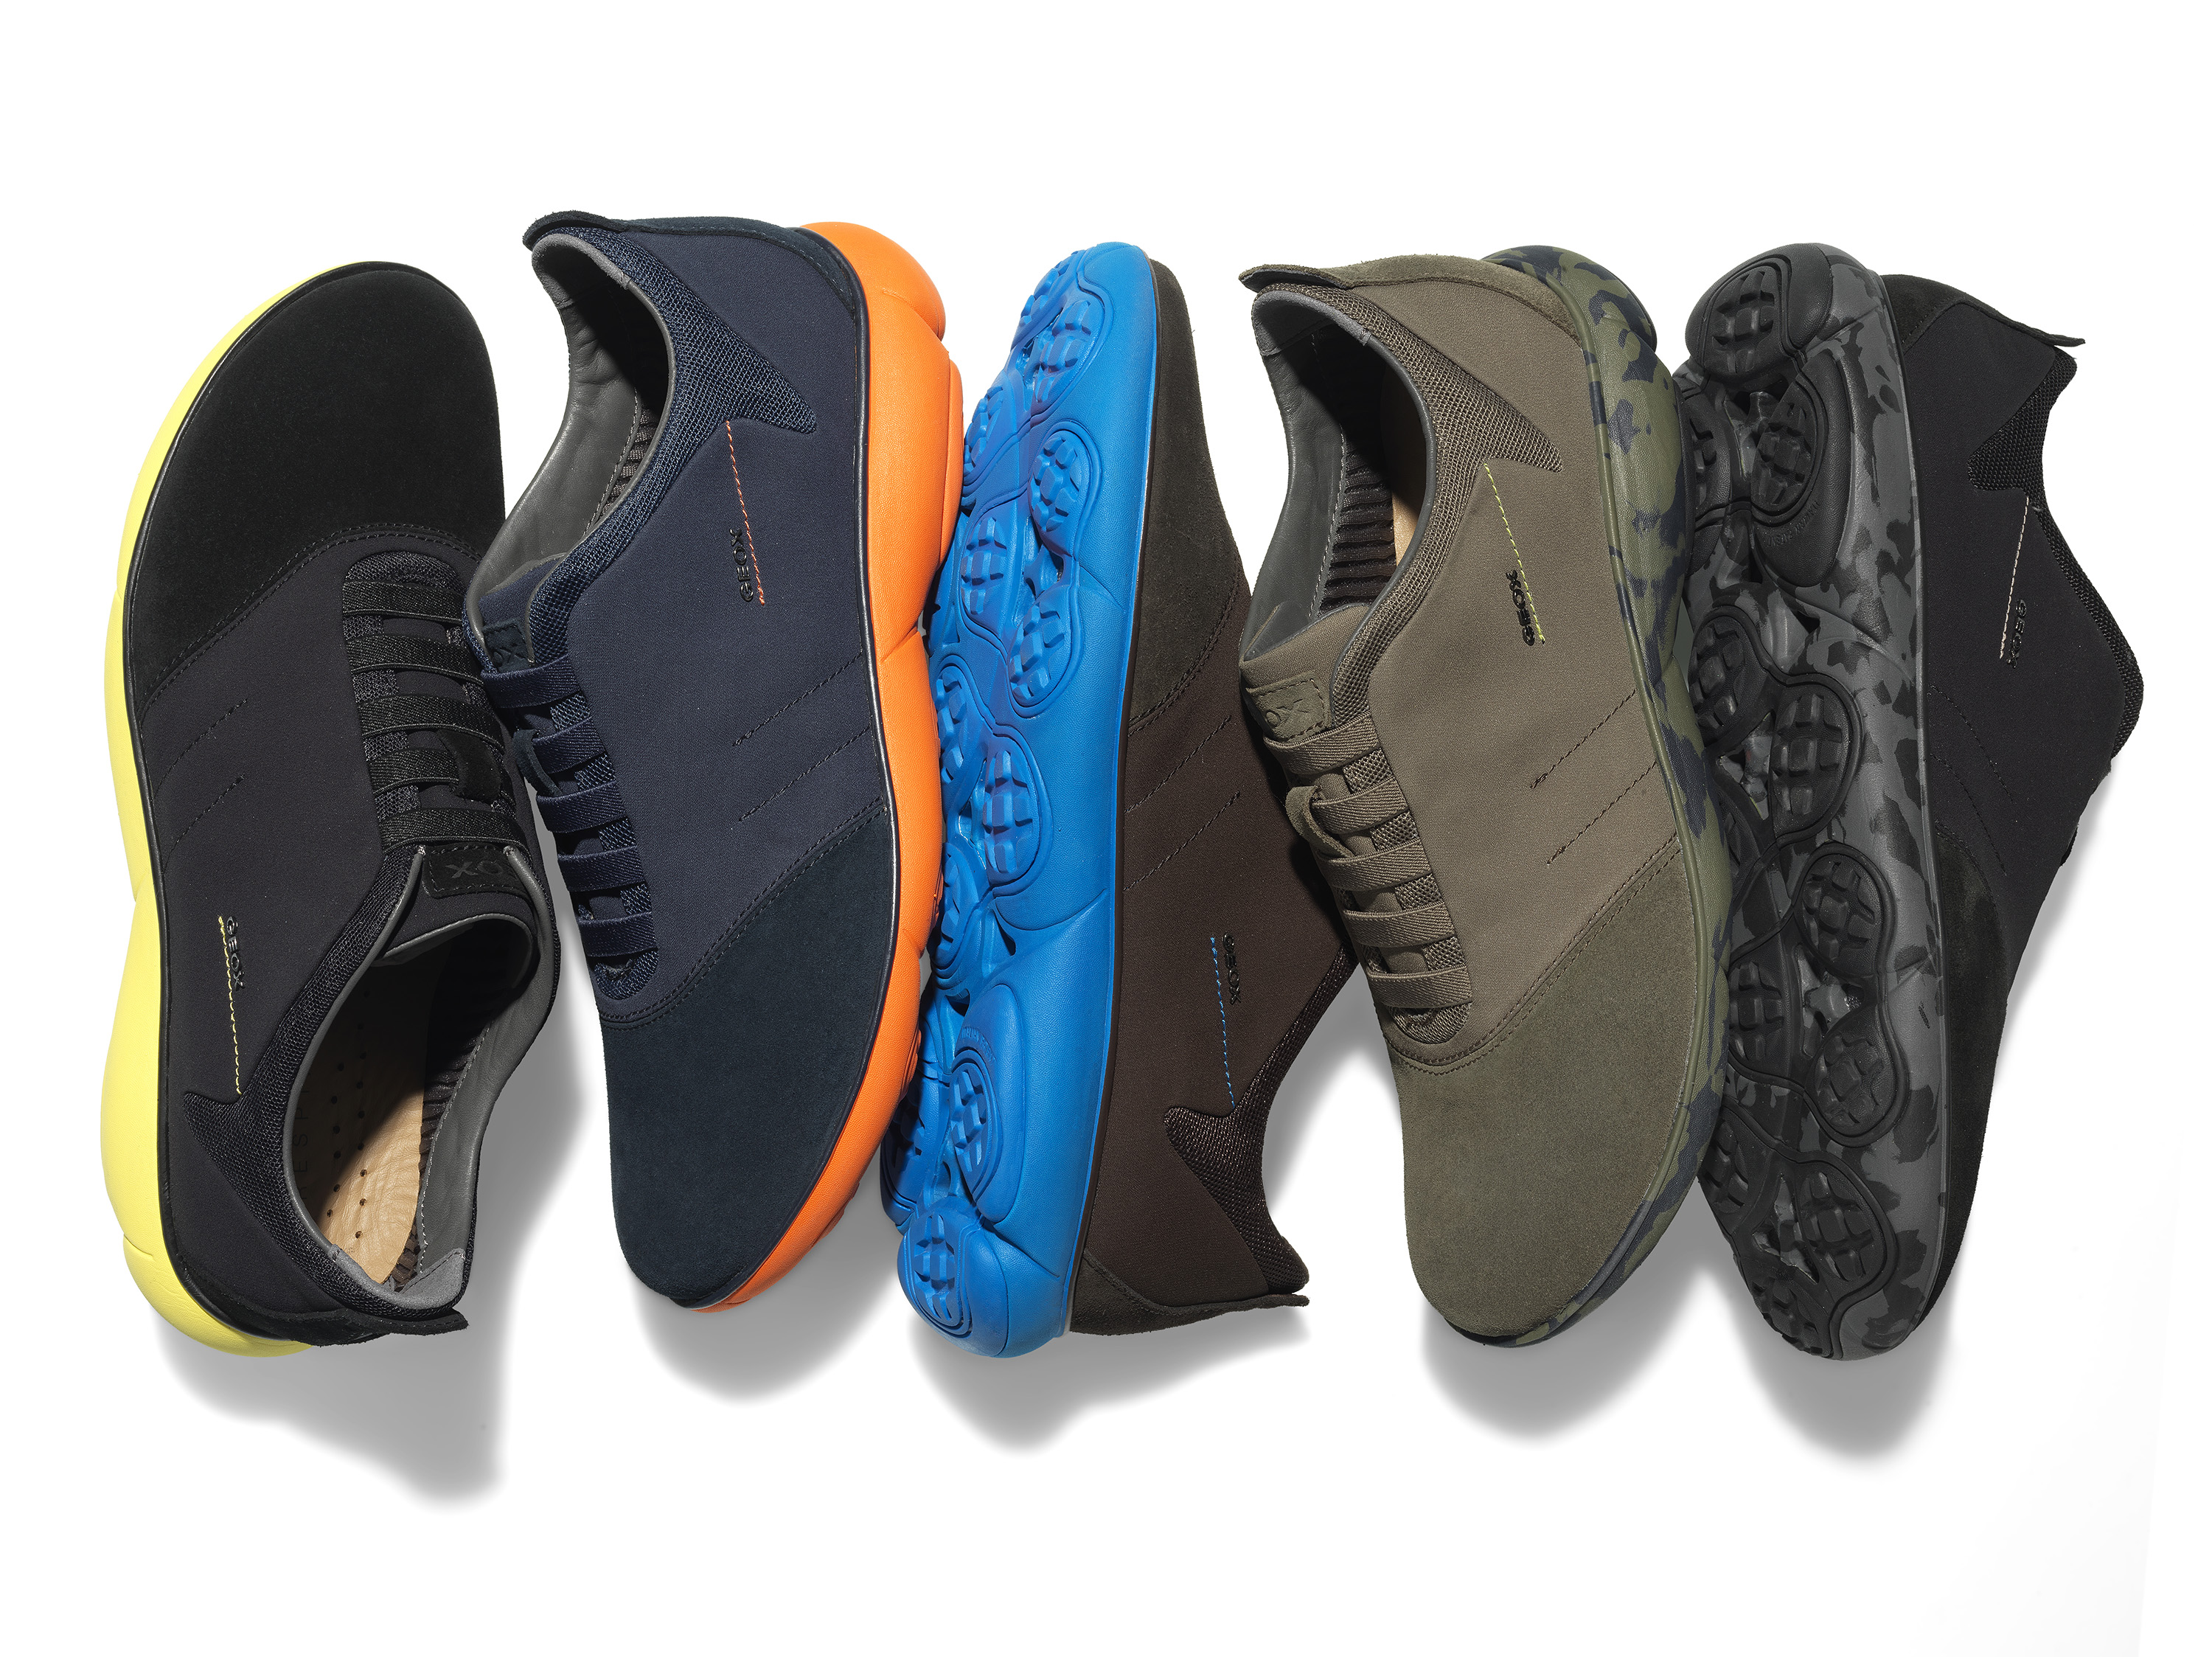 63358740f5a GEOX Launches Men's Footwear Collection Autumn/Winter 2016-2017